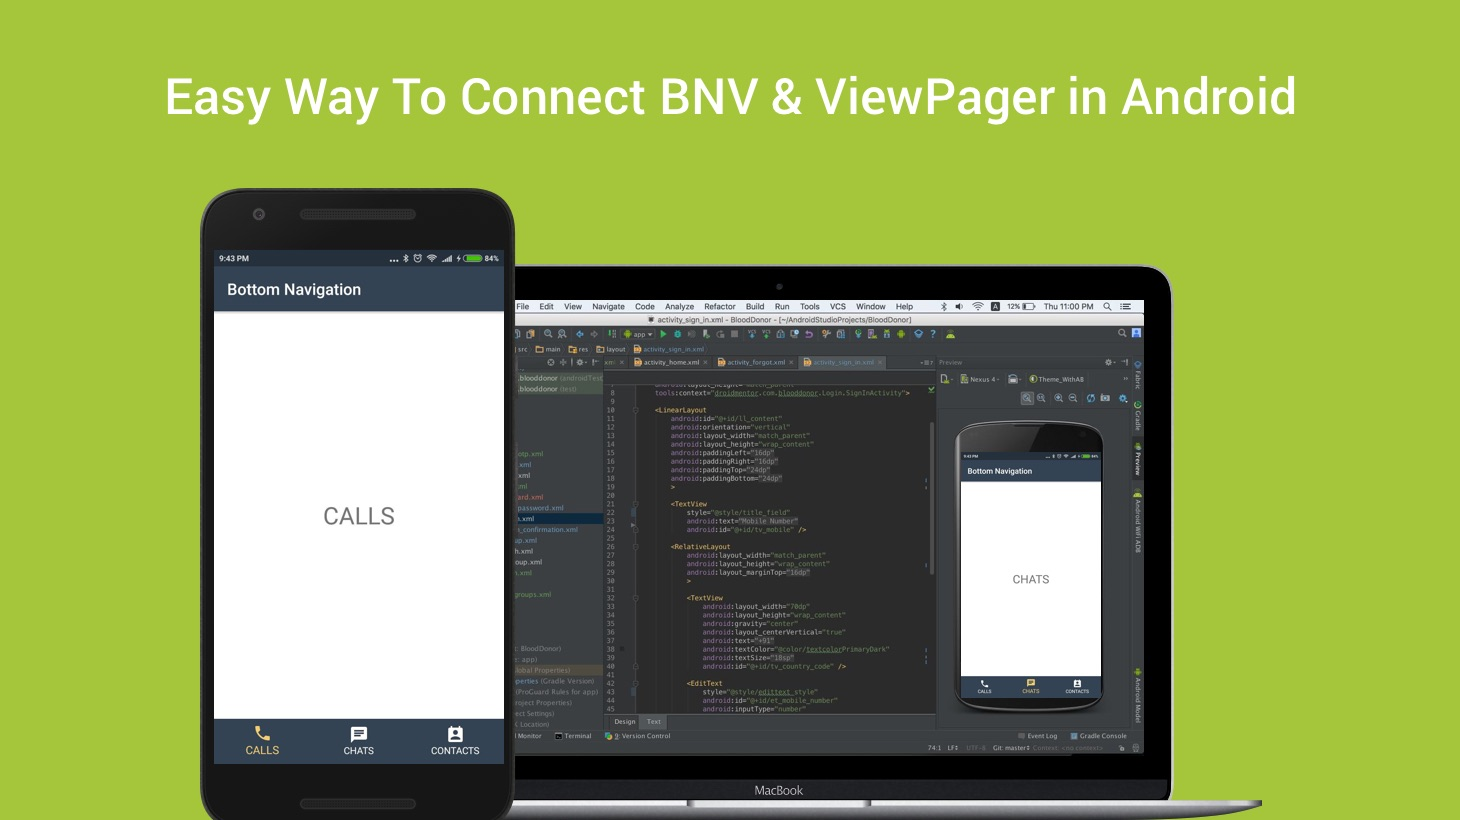 Easy Way To Connect BottomNavigationView & ViewPager in Android